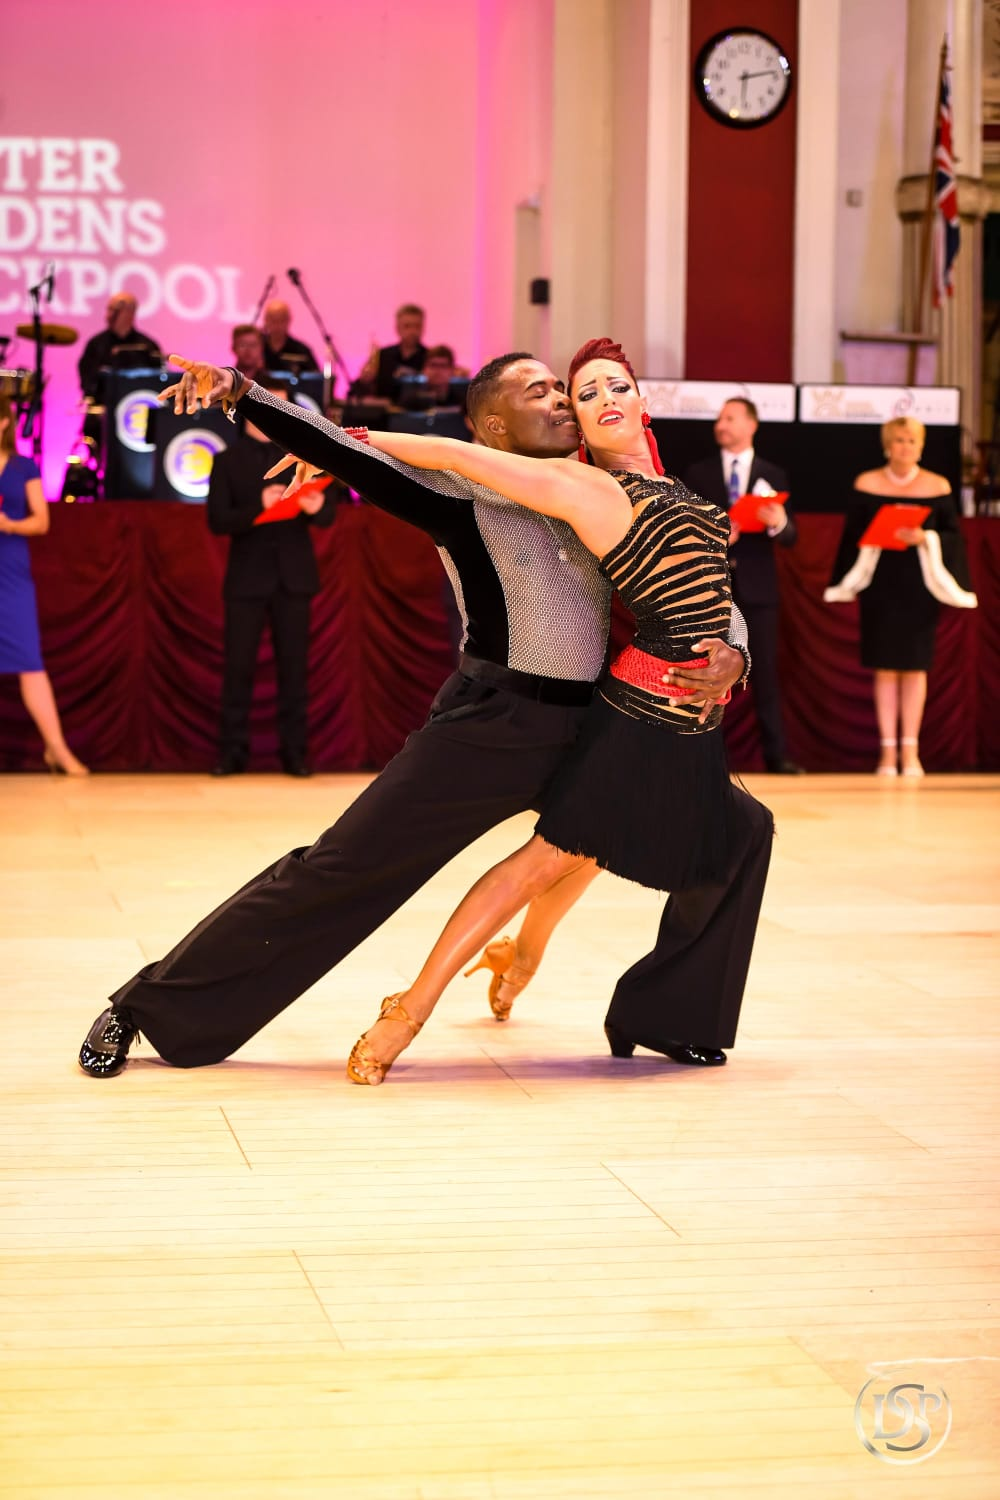 Blackpool Dance - Ballroom & Beyond's owner and principal dance instructor Jaki Brockman stomped the competition with fellow dancer and Ballroom & Beyond associate Jean Michel Erole at one of the largest and most well-known dancesport competitions in the world: the Blackpool Dance Festival. The two made a wickedly formidable team, taking 6th place in the final round of the Professional American Rhythm category! Way to go Jaki and Jean Michel! You inspire us all!